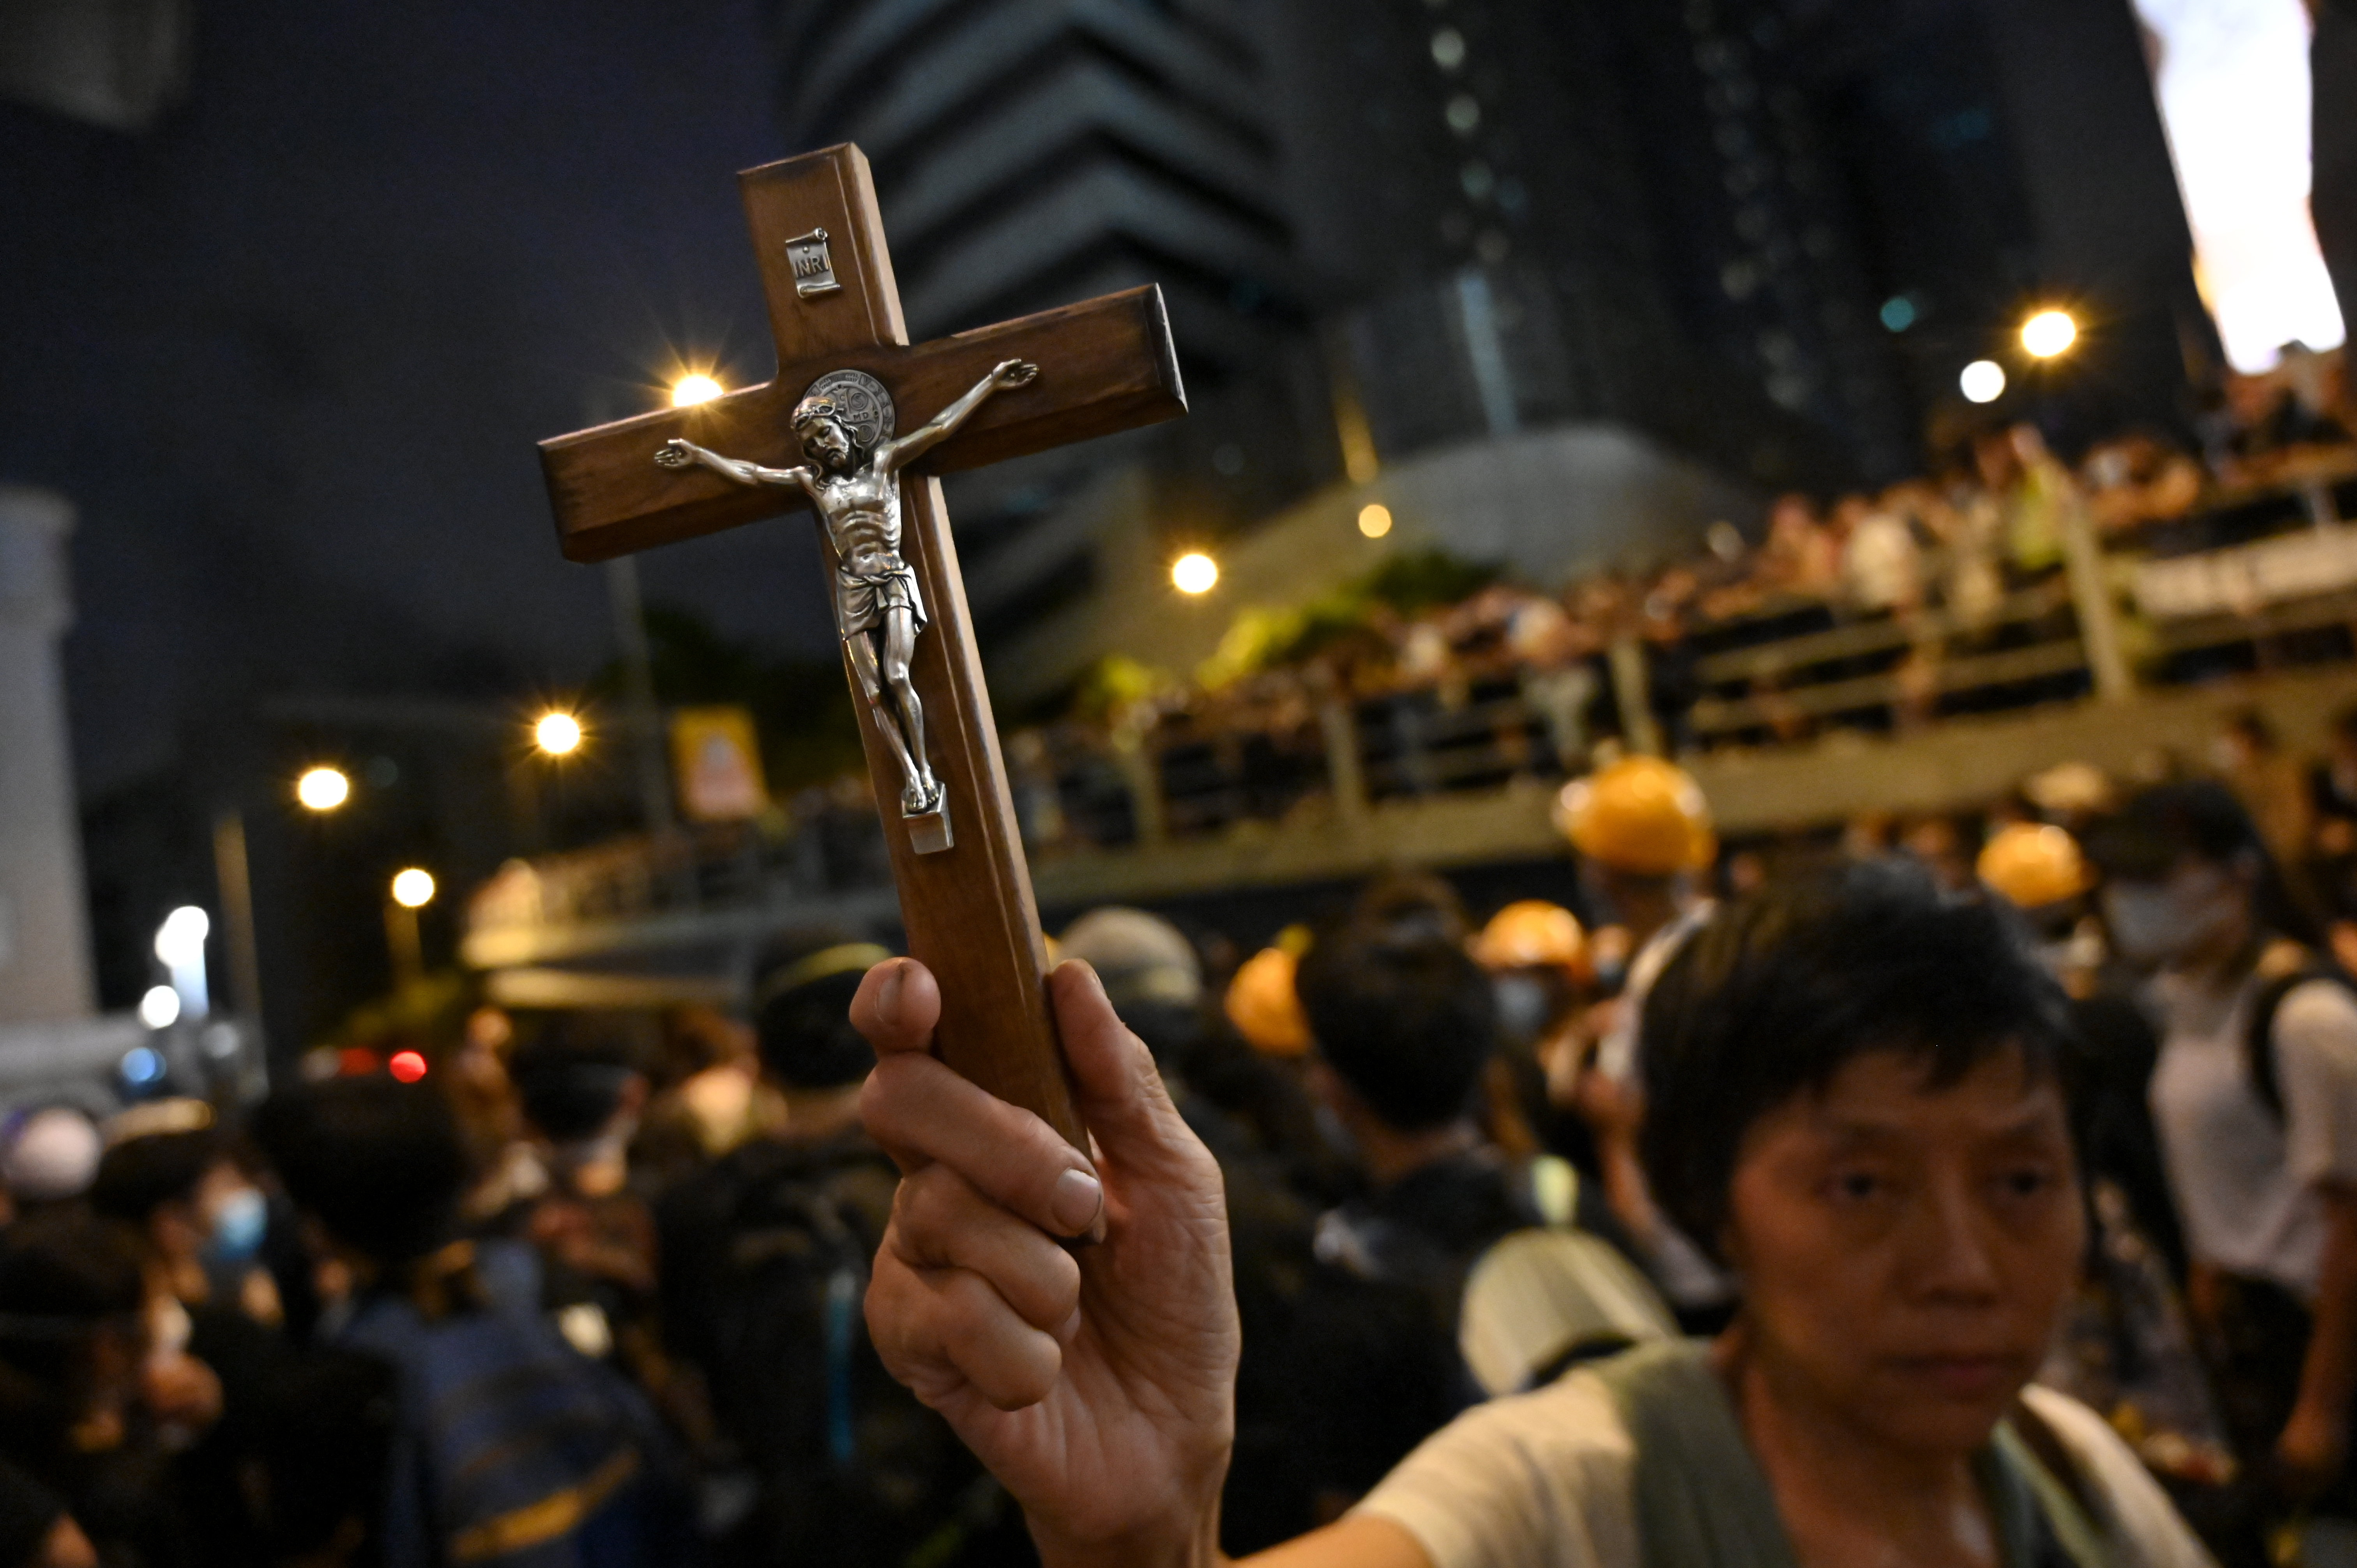 Hong Kong Christians Call for Reform | Voice of America